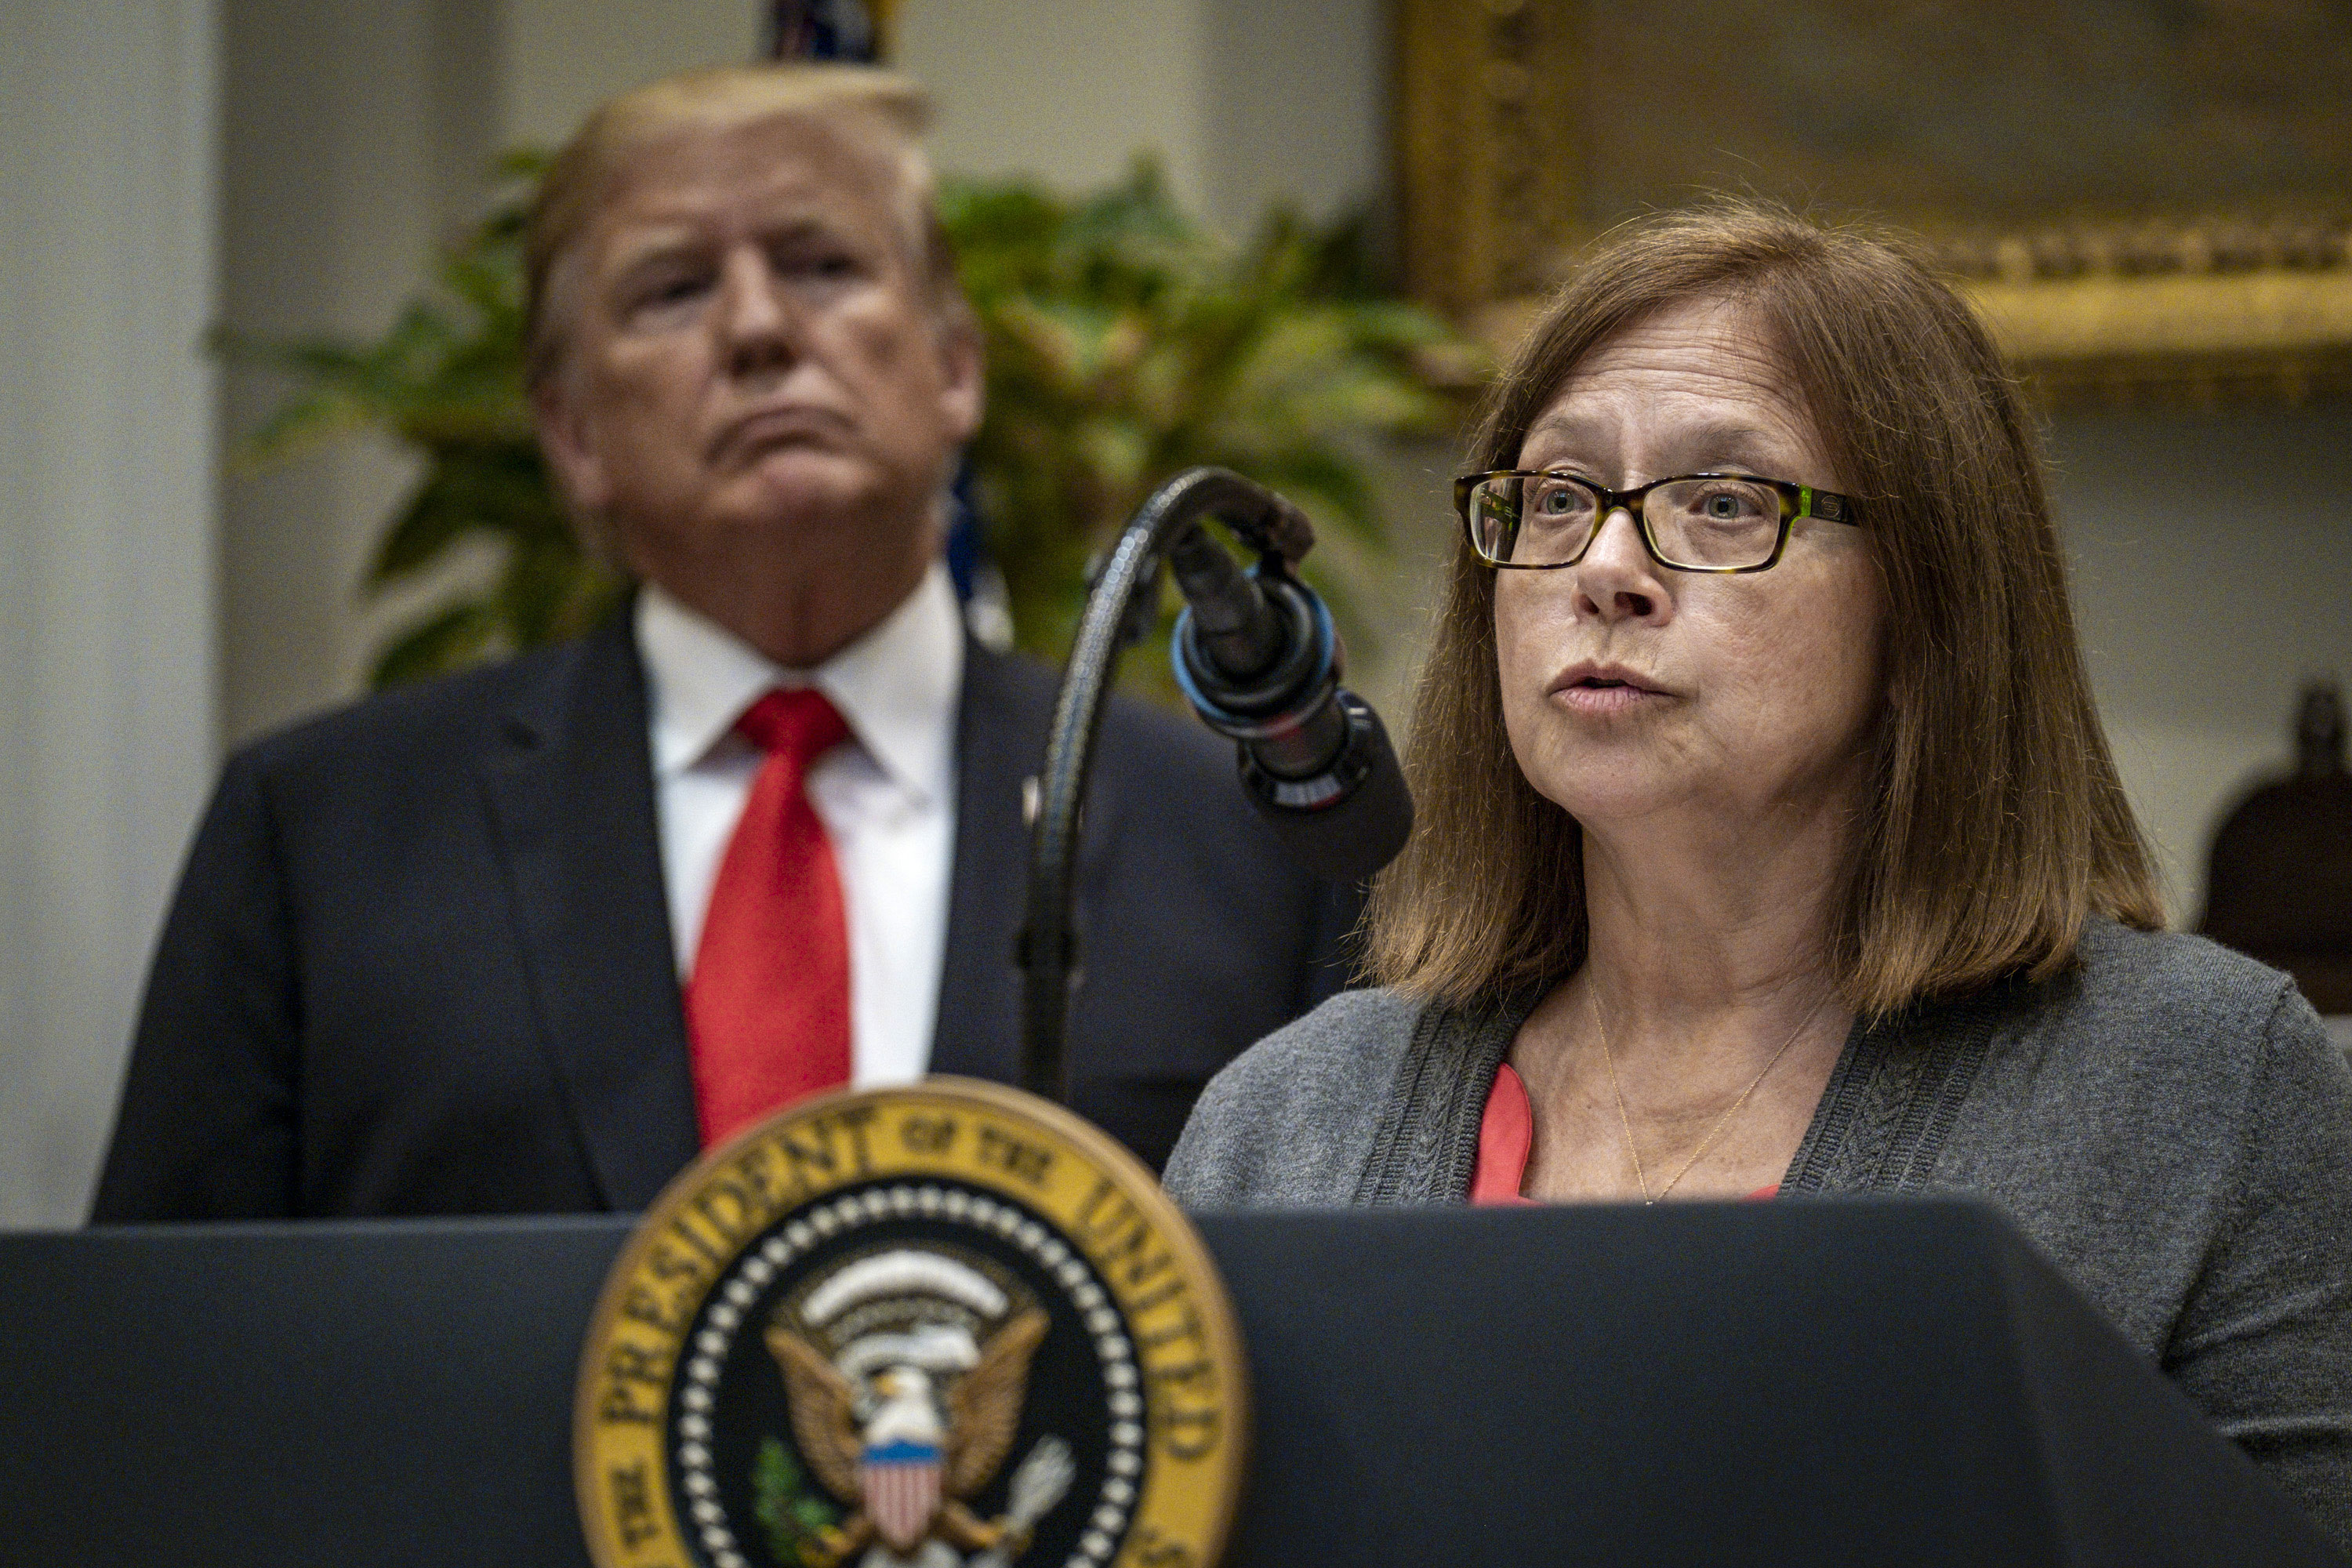 Elinore McCance-Katz, assistant secretary of Health and Human Services, speaks alongside President Donald Trump on September 4, 2019 in Washington, DC.